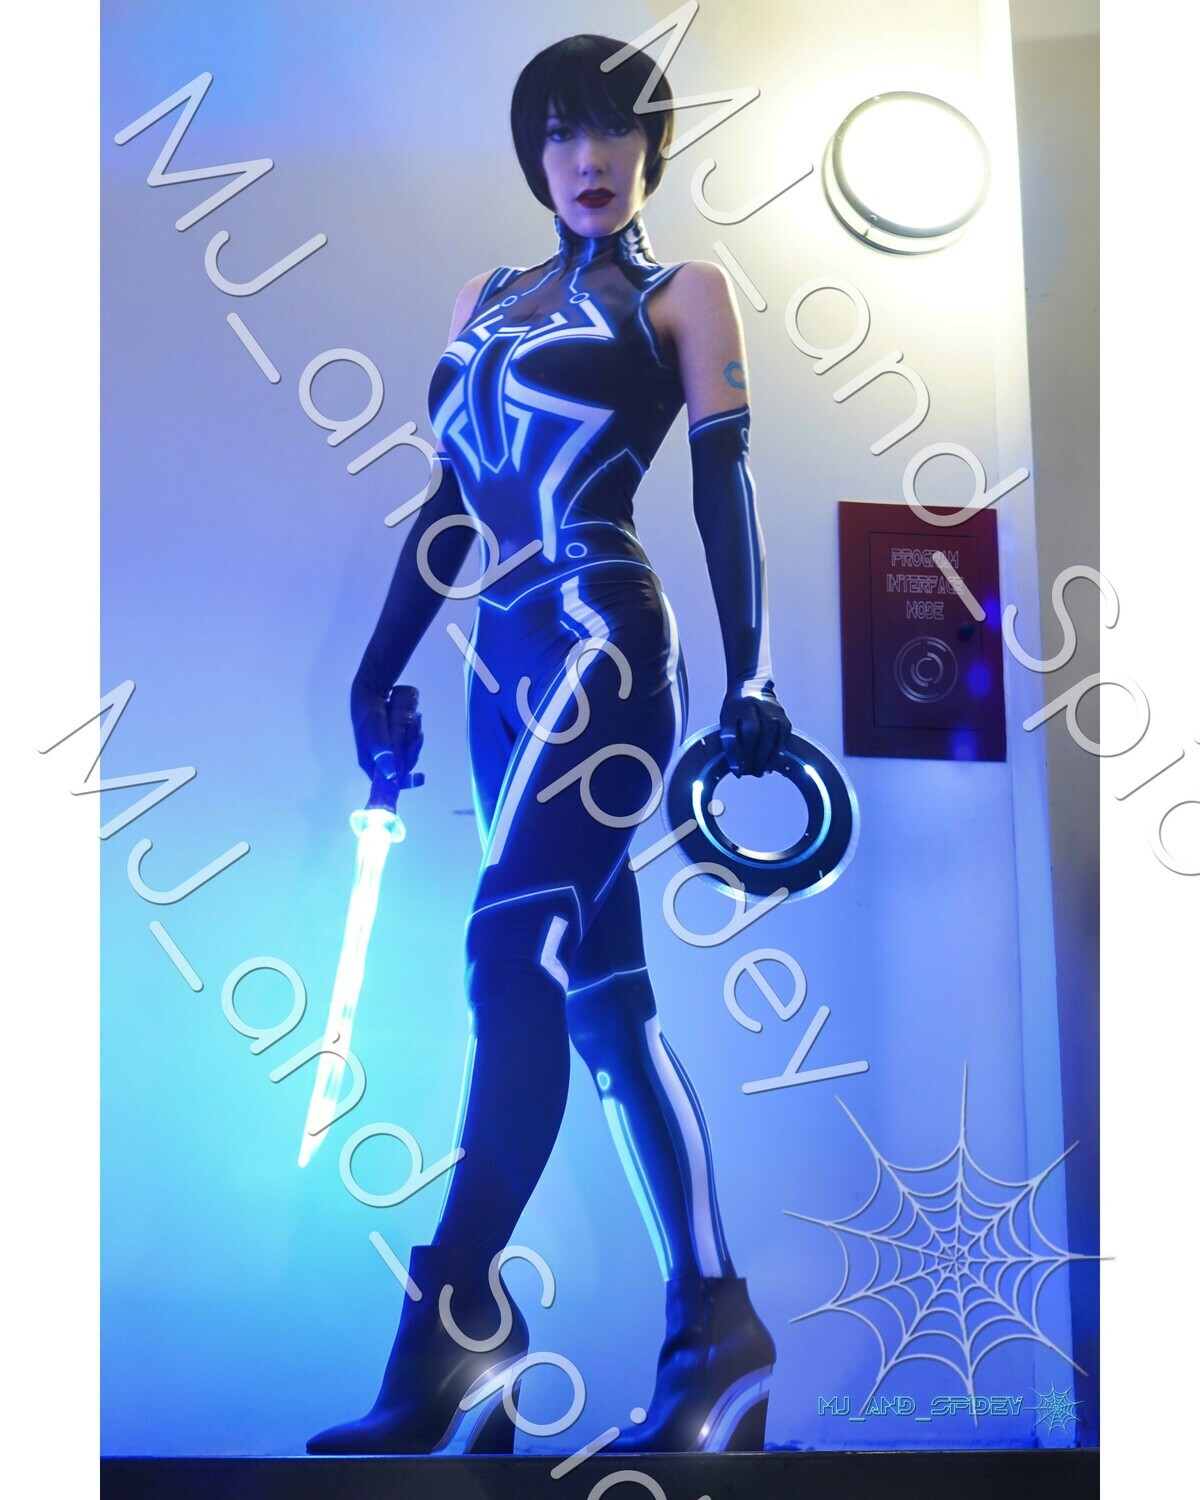 Sci-Fi - Mary Jane Watson - Quorra of TRON Legacy - No. 1 - 8x10 Cosplay Print (@MJ_and_Spidey, Sci Fi, Science Fiction, Cyberpunk)